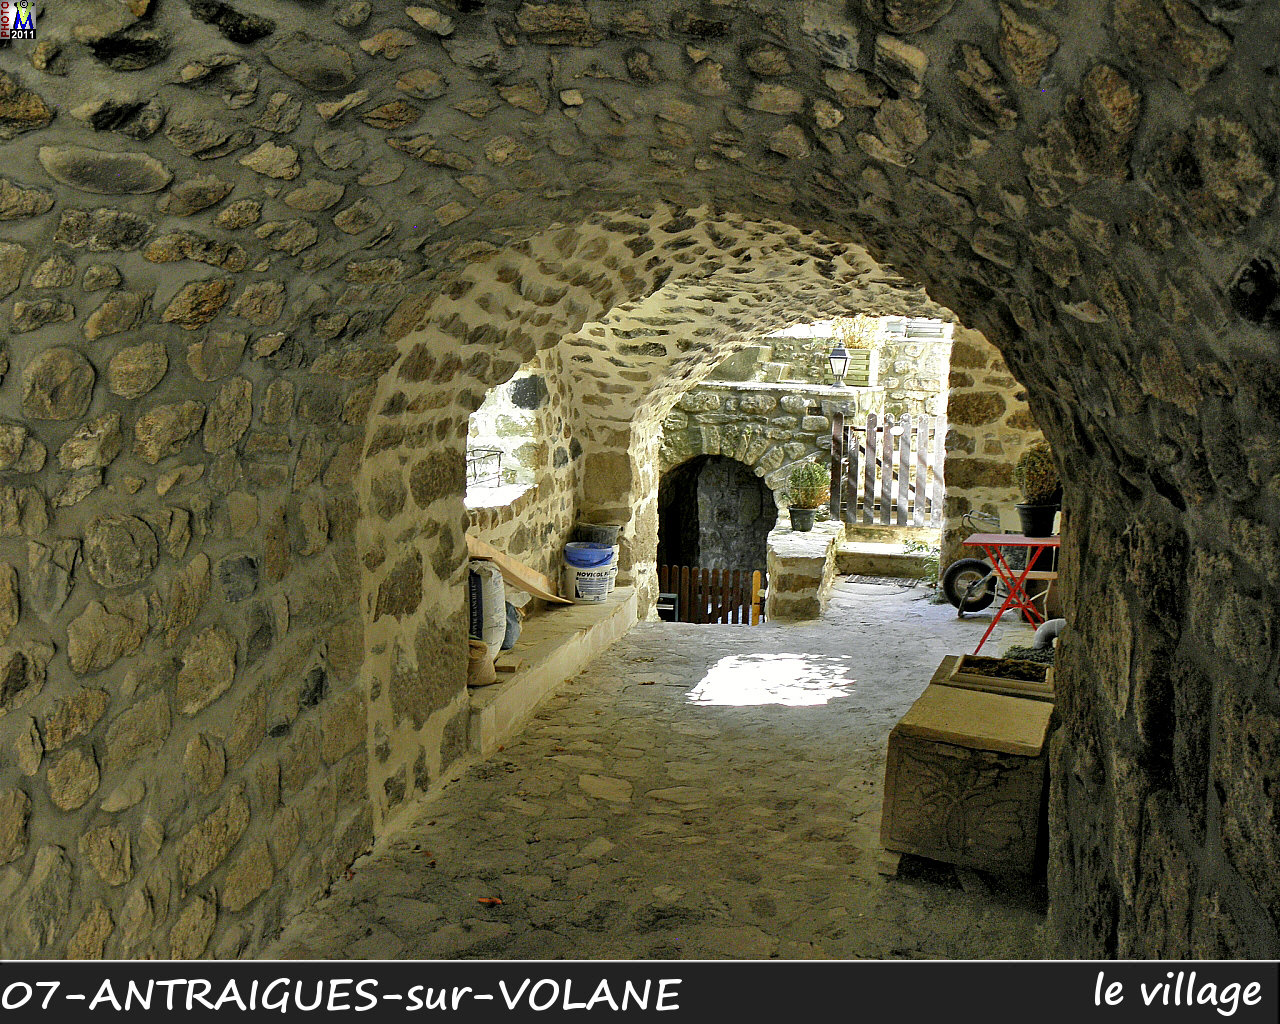 07ANTRAIGUES-VOLANE_village_112.jpg